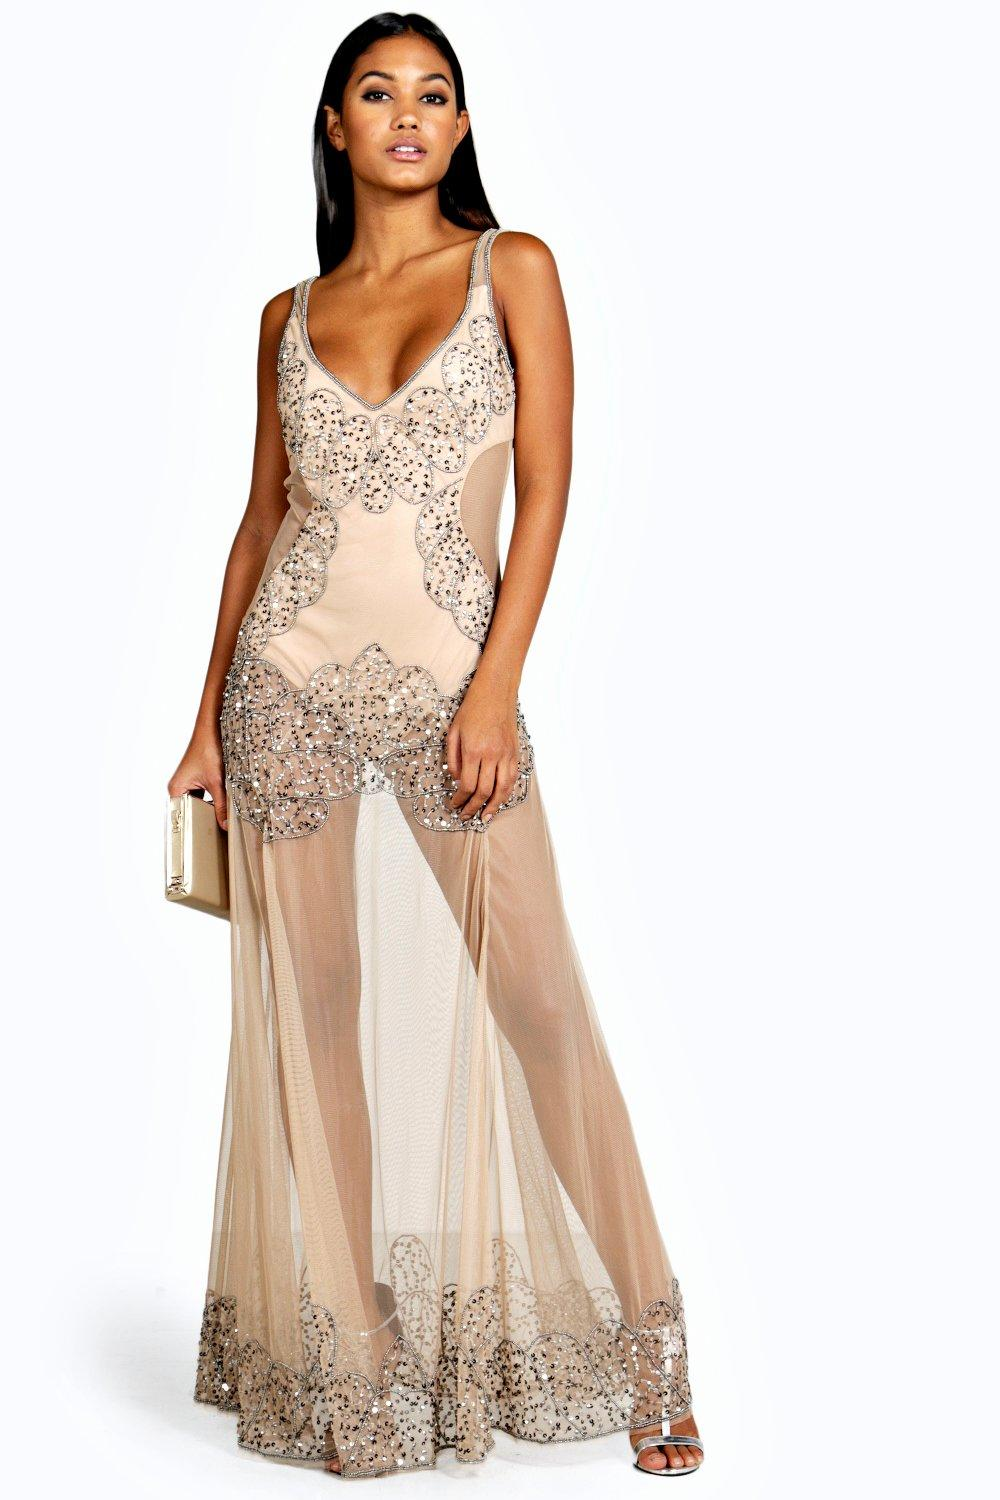 boohoo Boutique Naty Embellished Placement Maxi Dress - nude $80.00 AT vintagedancer.com